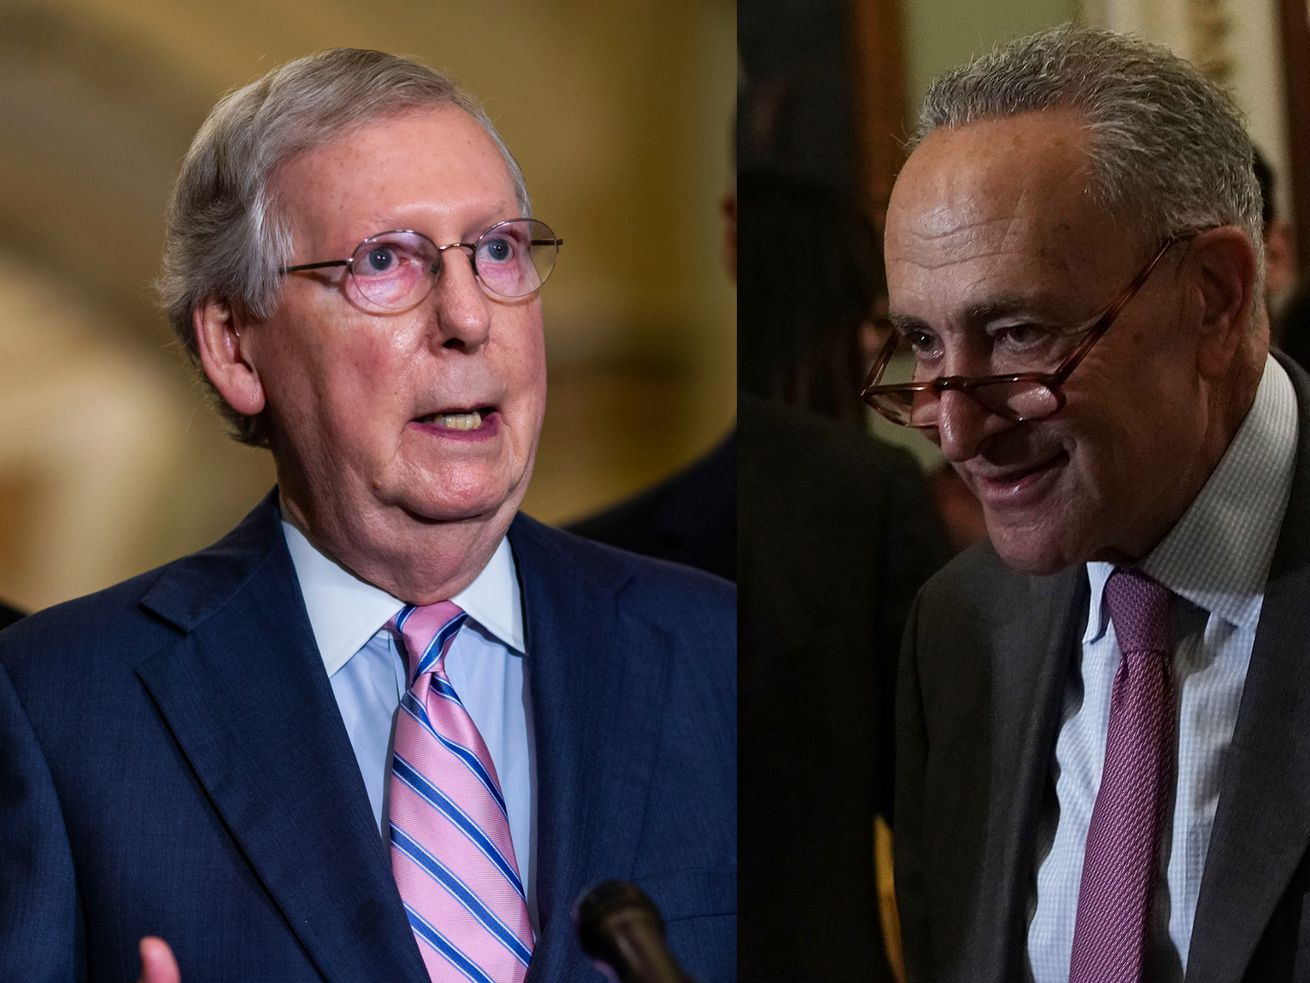 memeorandum: Chuck Schumer and Mitch McConnell hang on to